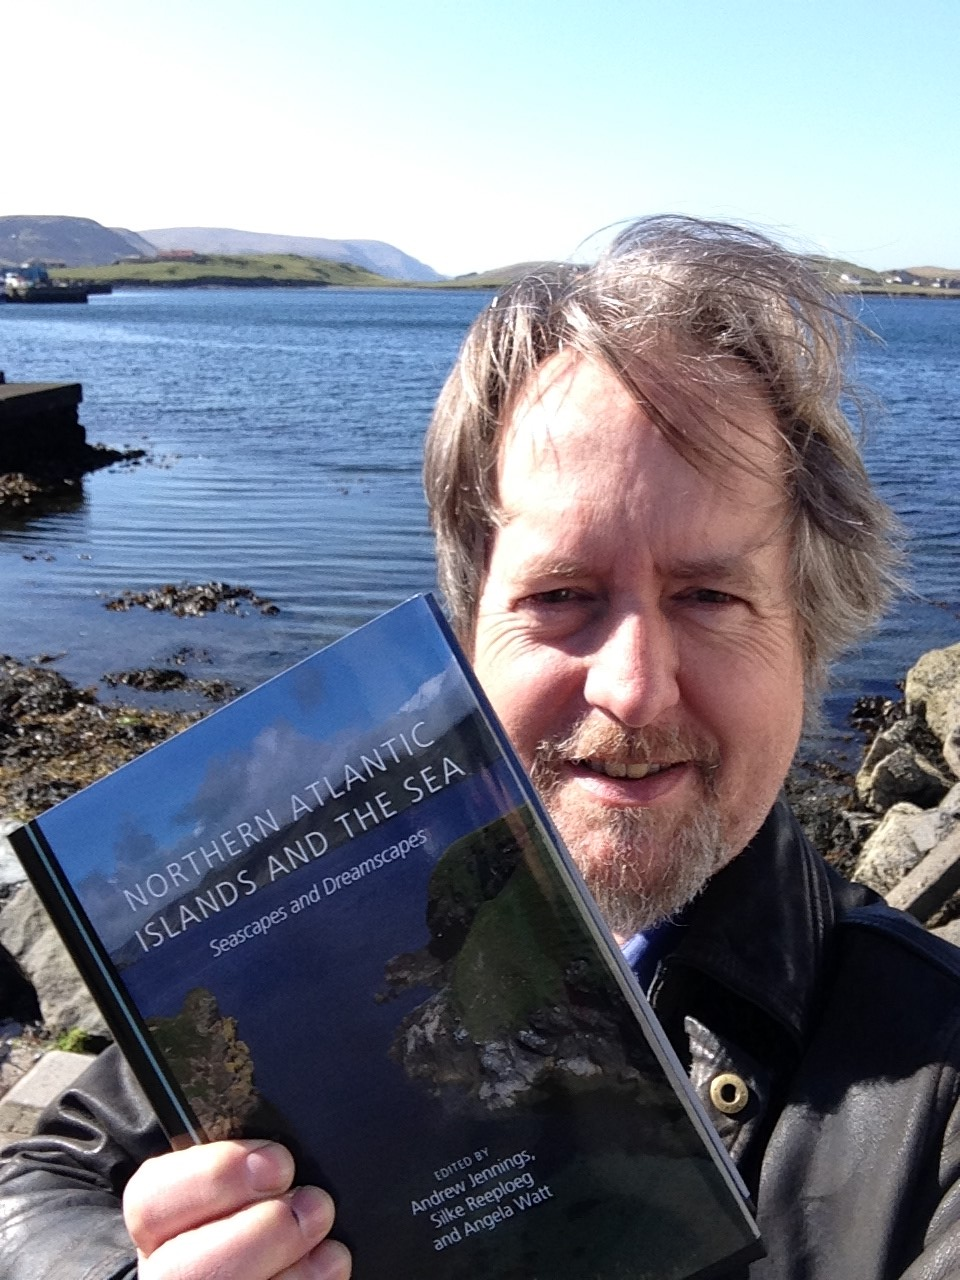 New Publication: Northern Atlantic Islands and the Sea: Seascapes and Dreamscapes